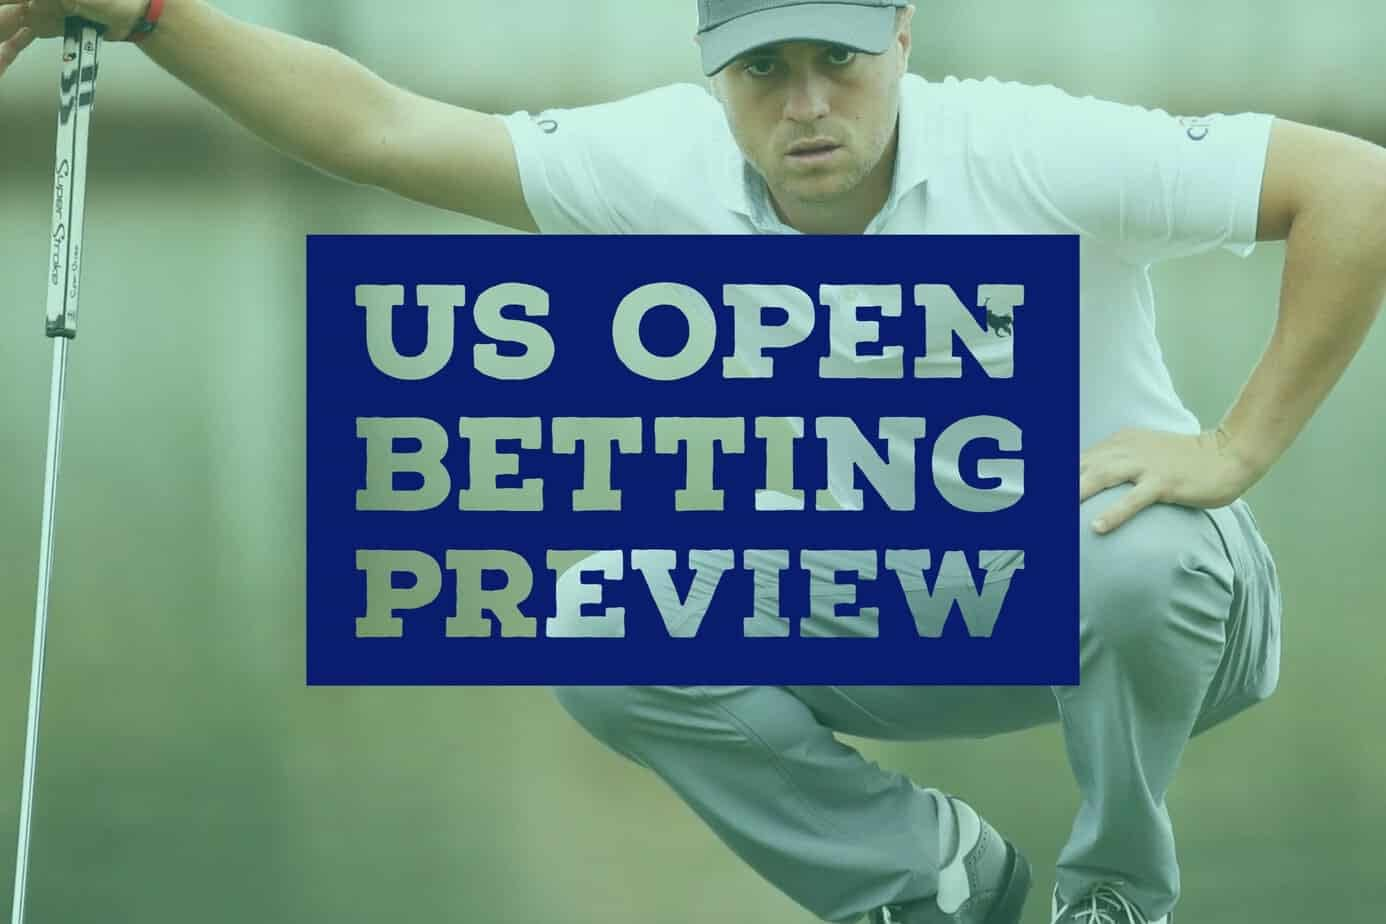 2019 US Open, Pebble Beach, Golf Betting, Preview and picks (FREE)